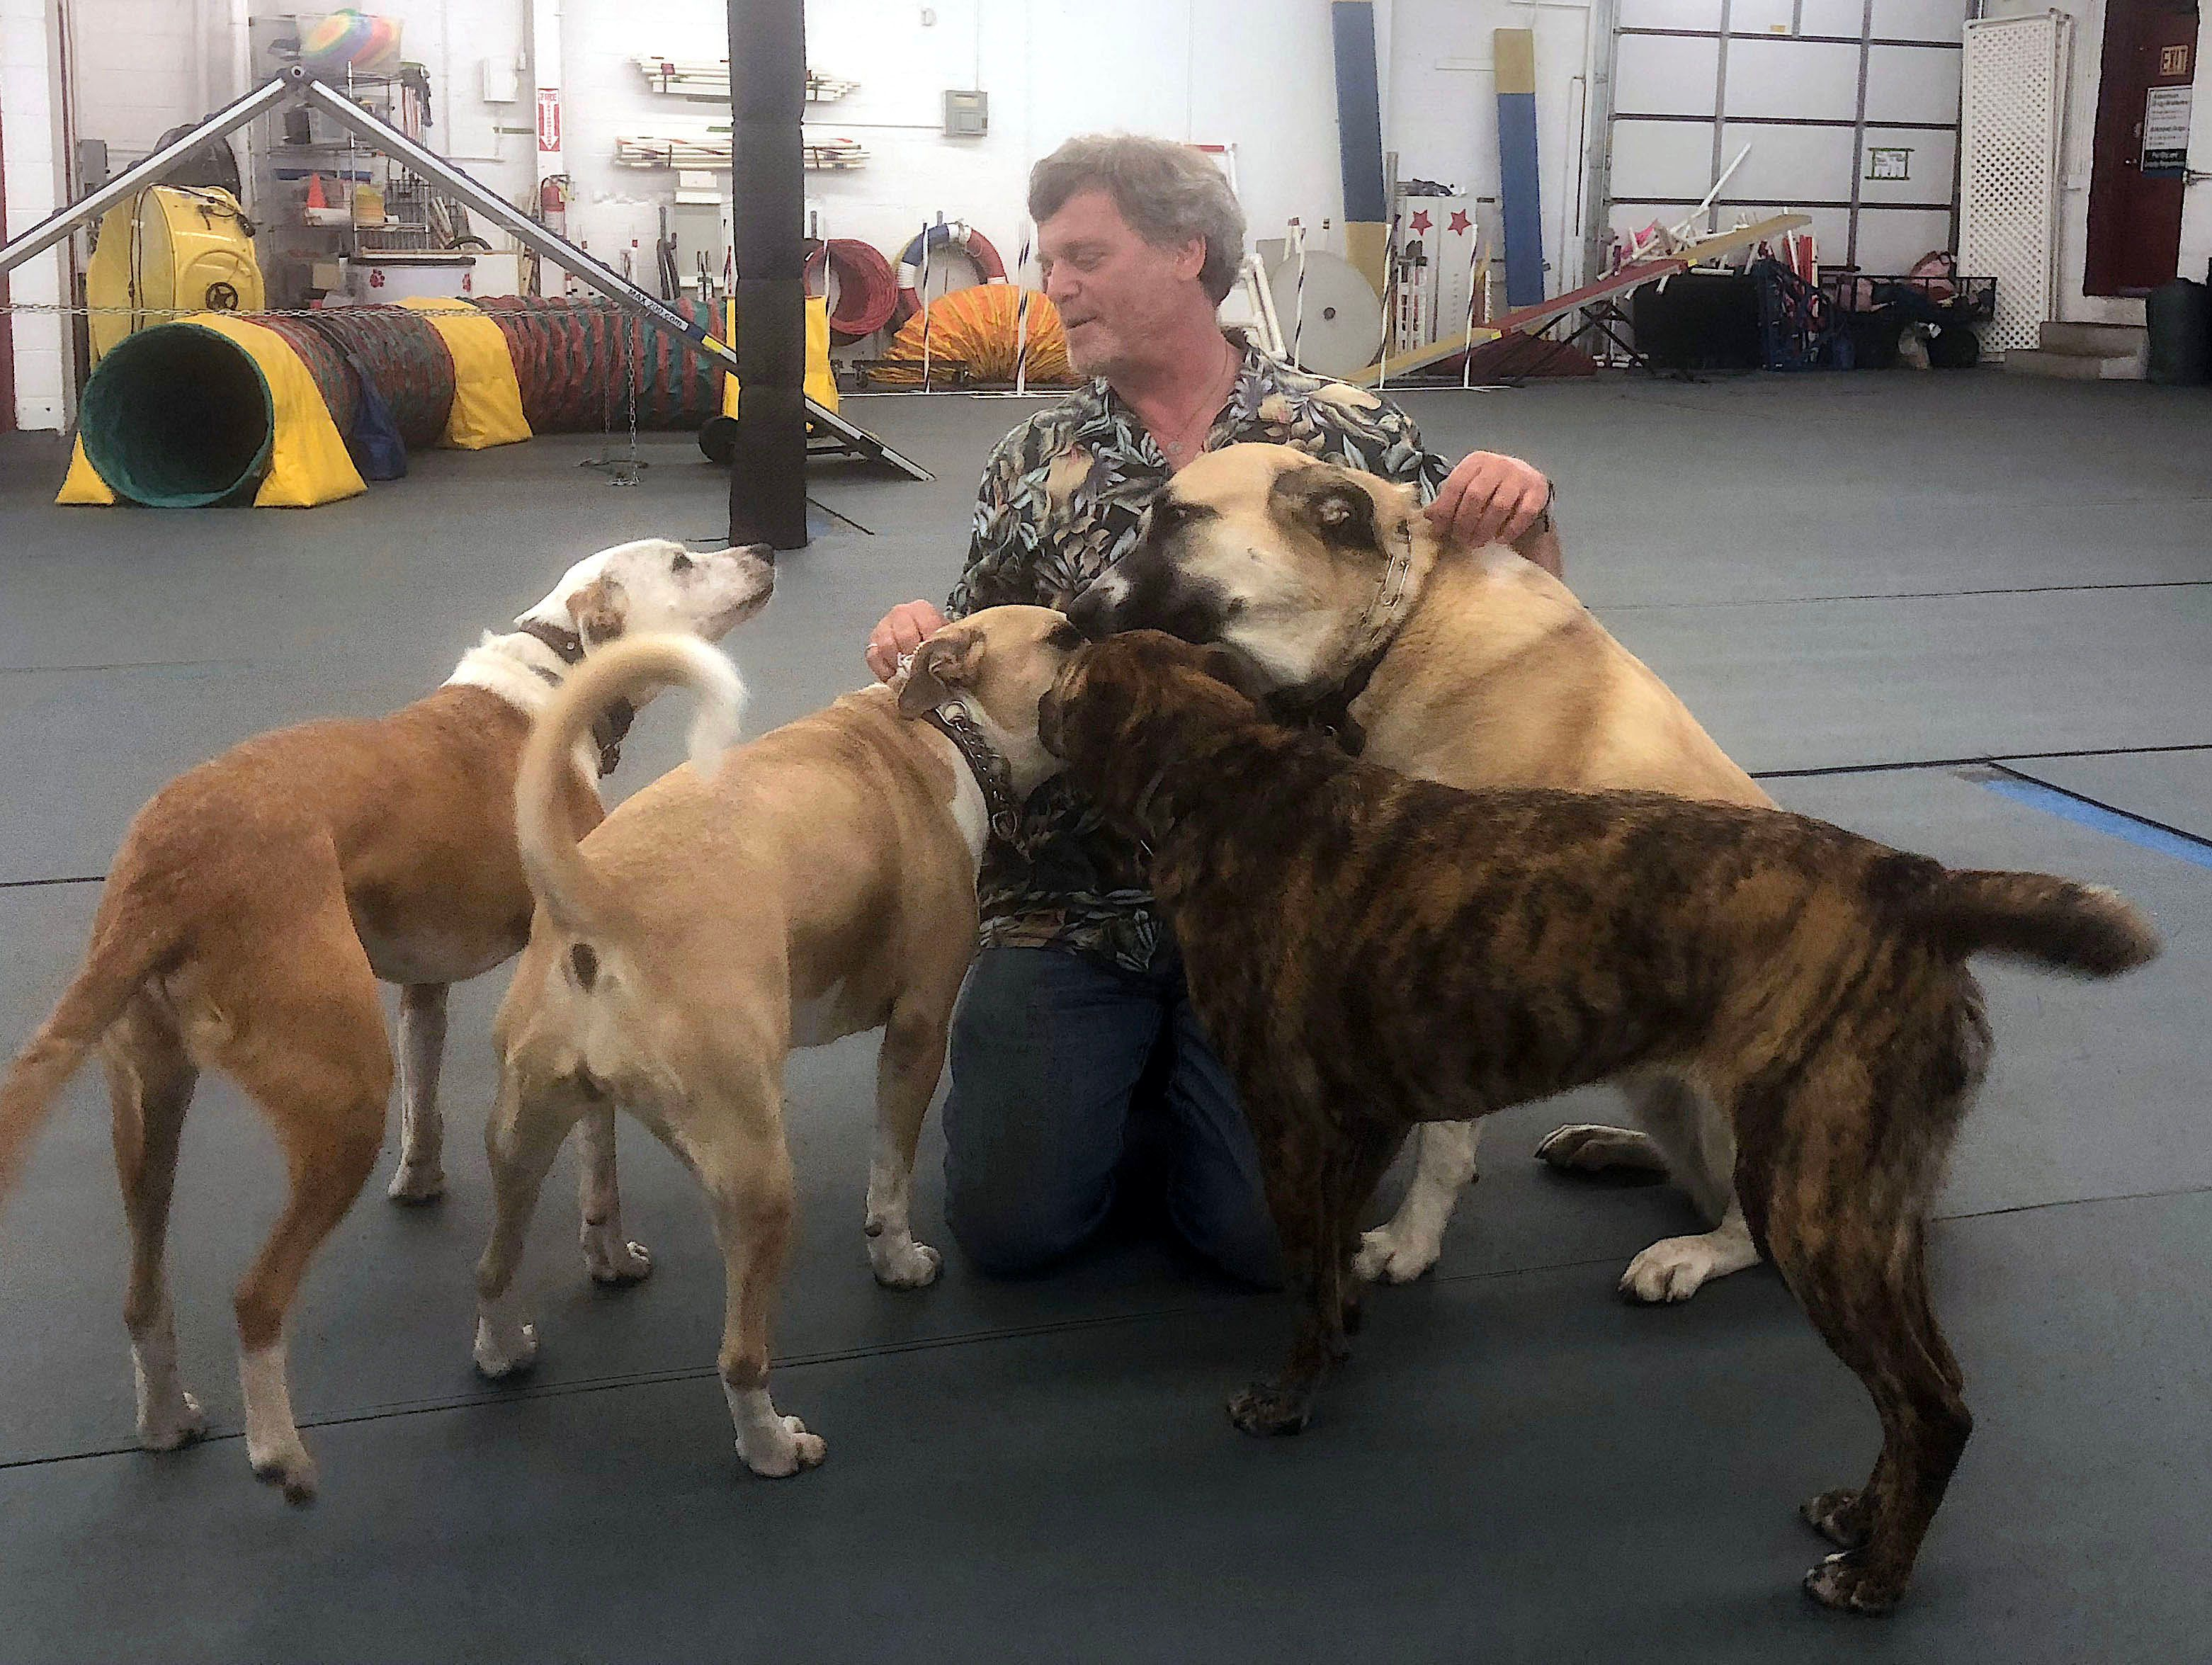 Animal behaviorist Corey Cohen says dogs can be traumatized by the sound of fireworks